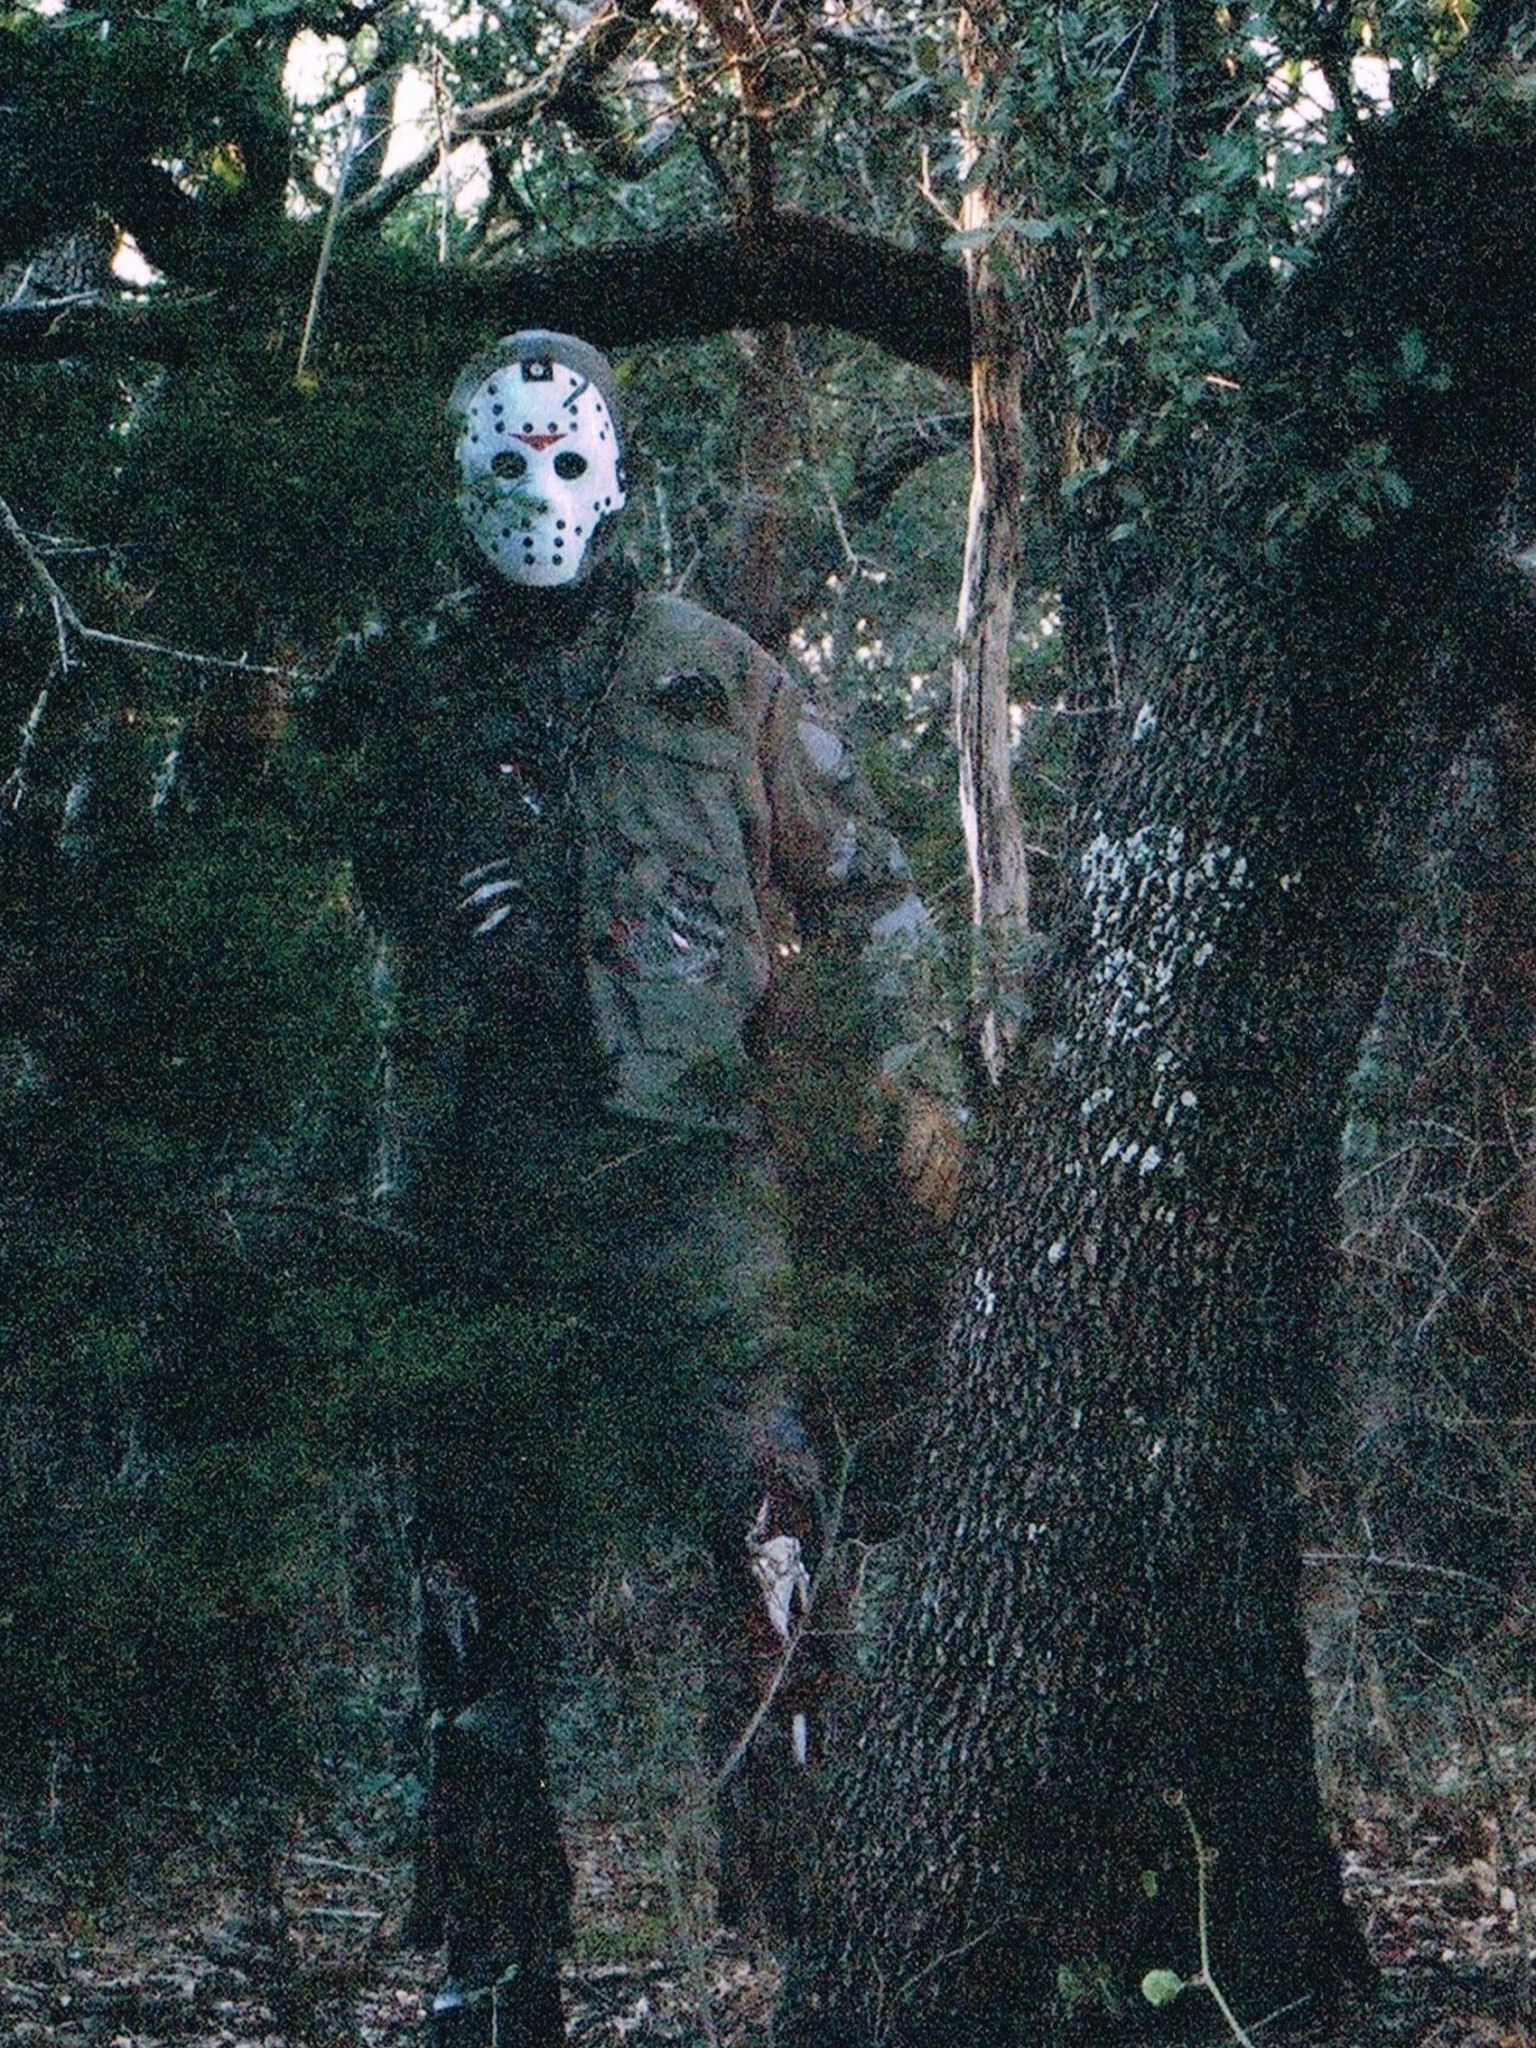 Download Jason Voorhees Friday The 13th Wallpaper Fridaythe13th